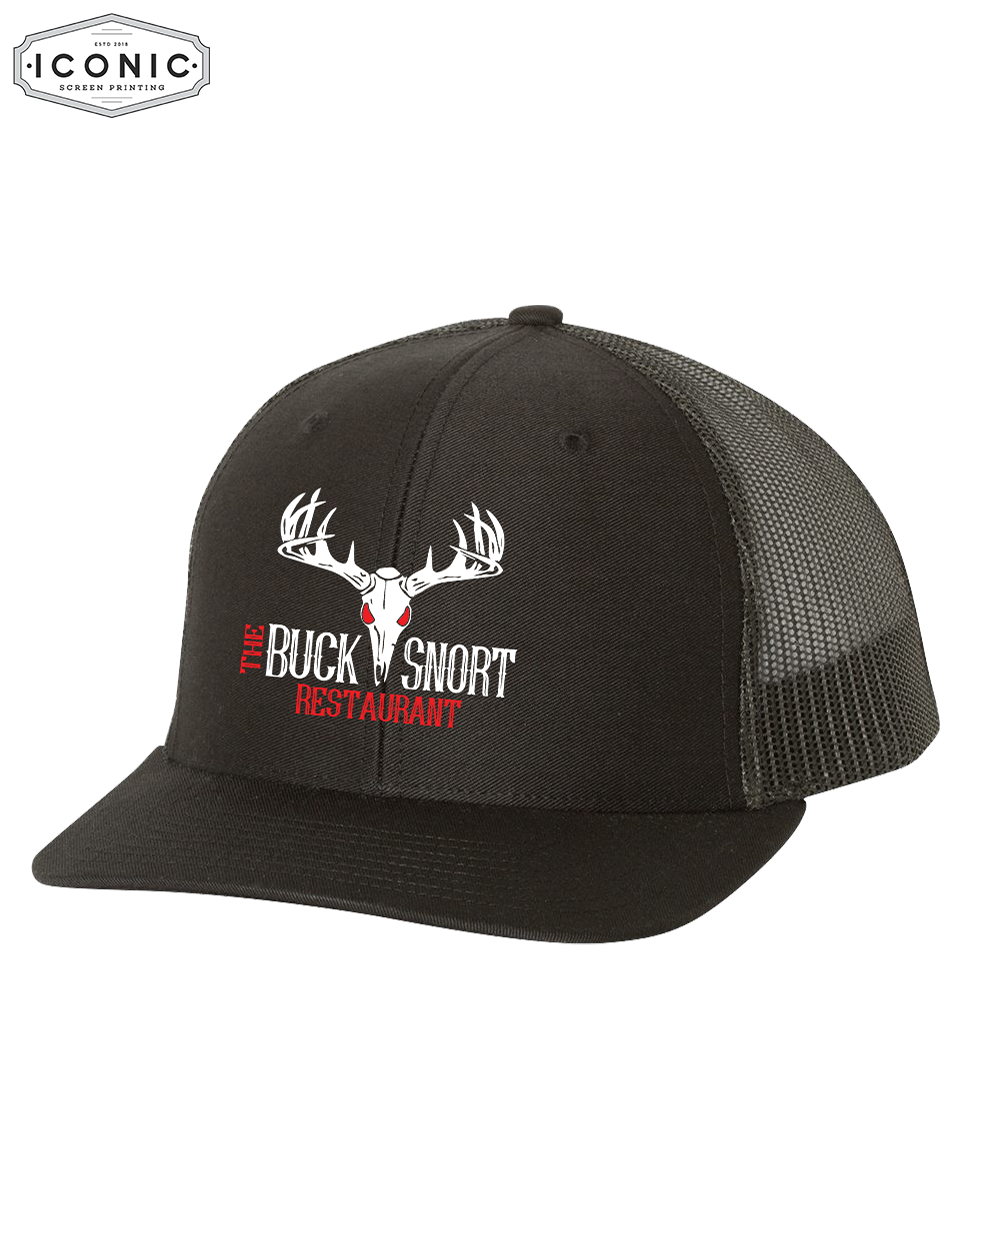 The Buck Snort Restaurant - Snapback Trucker Cap